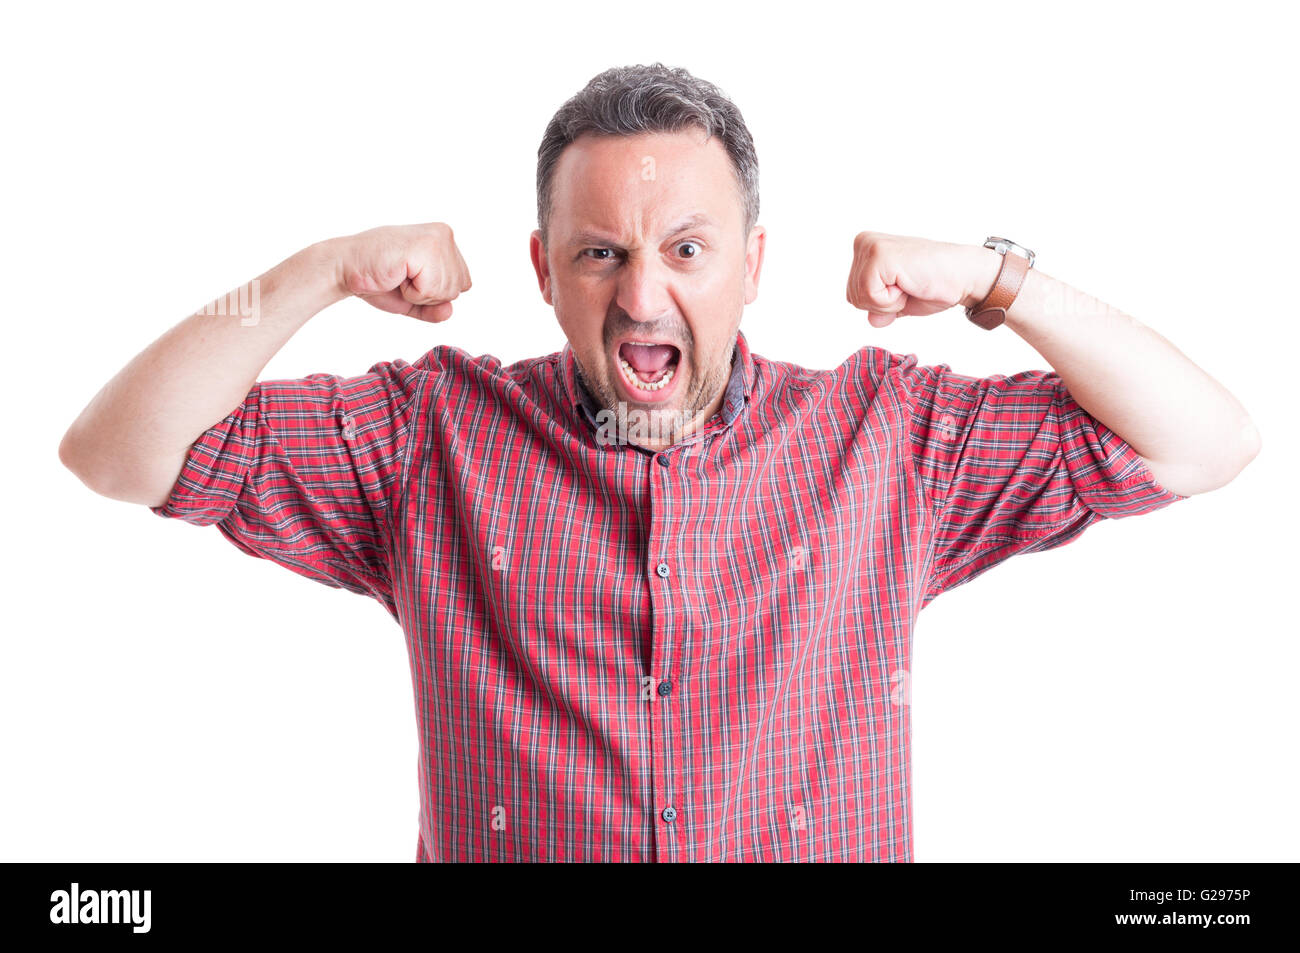 Angry, stressed and furious man shouting and flexing arms - Stock Image